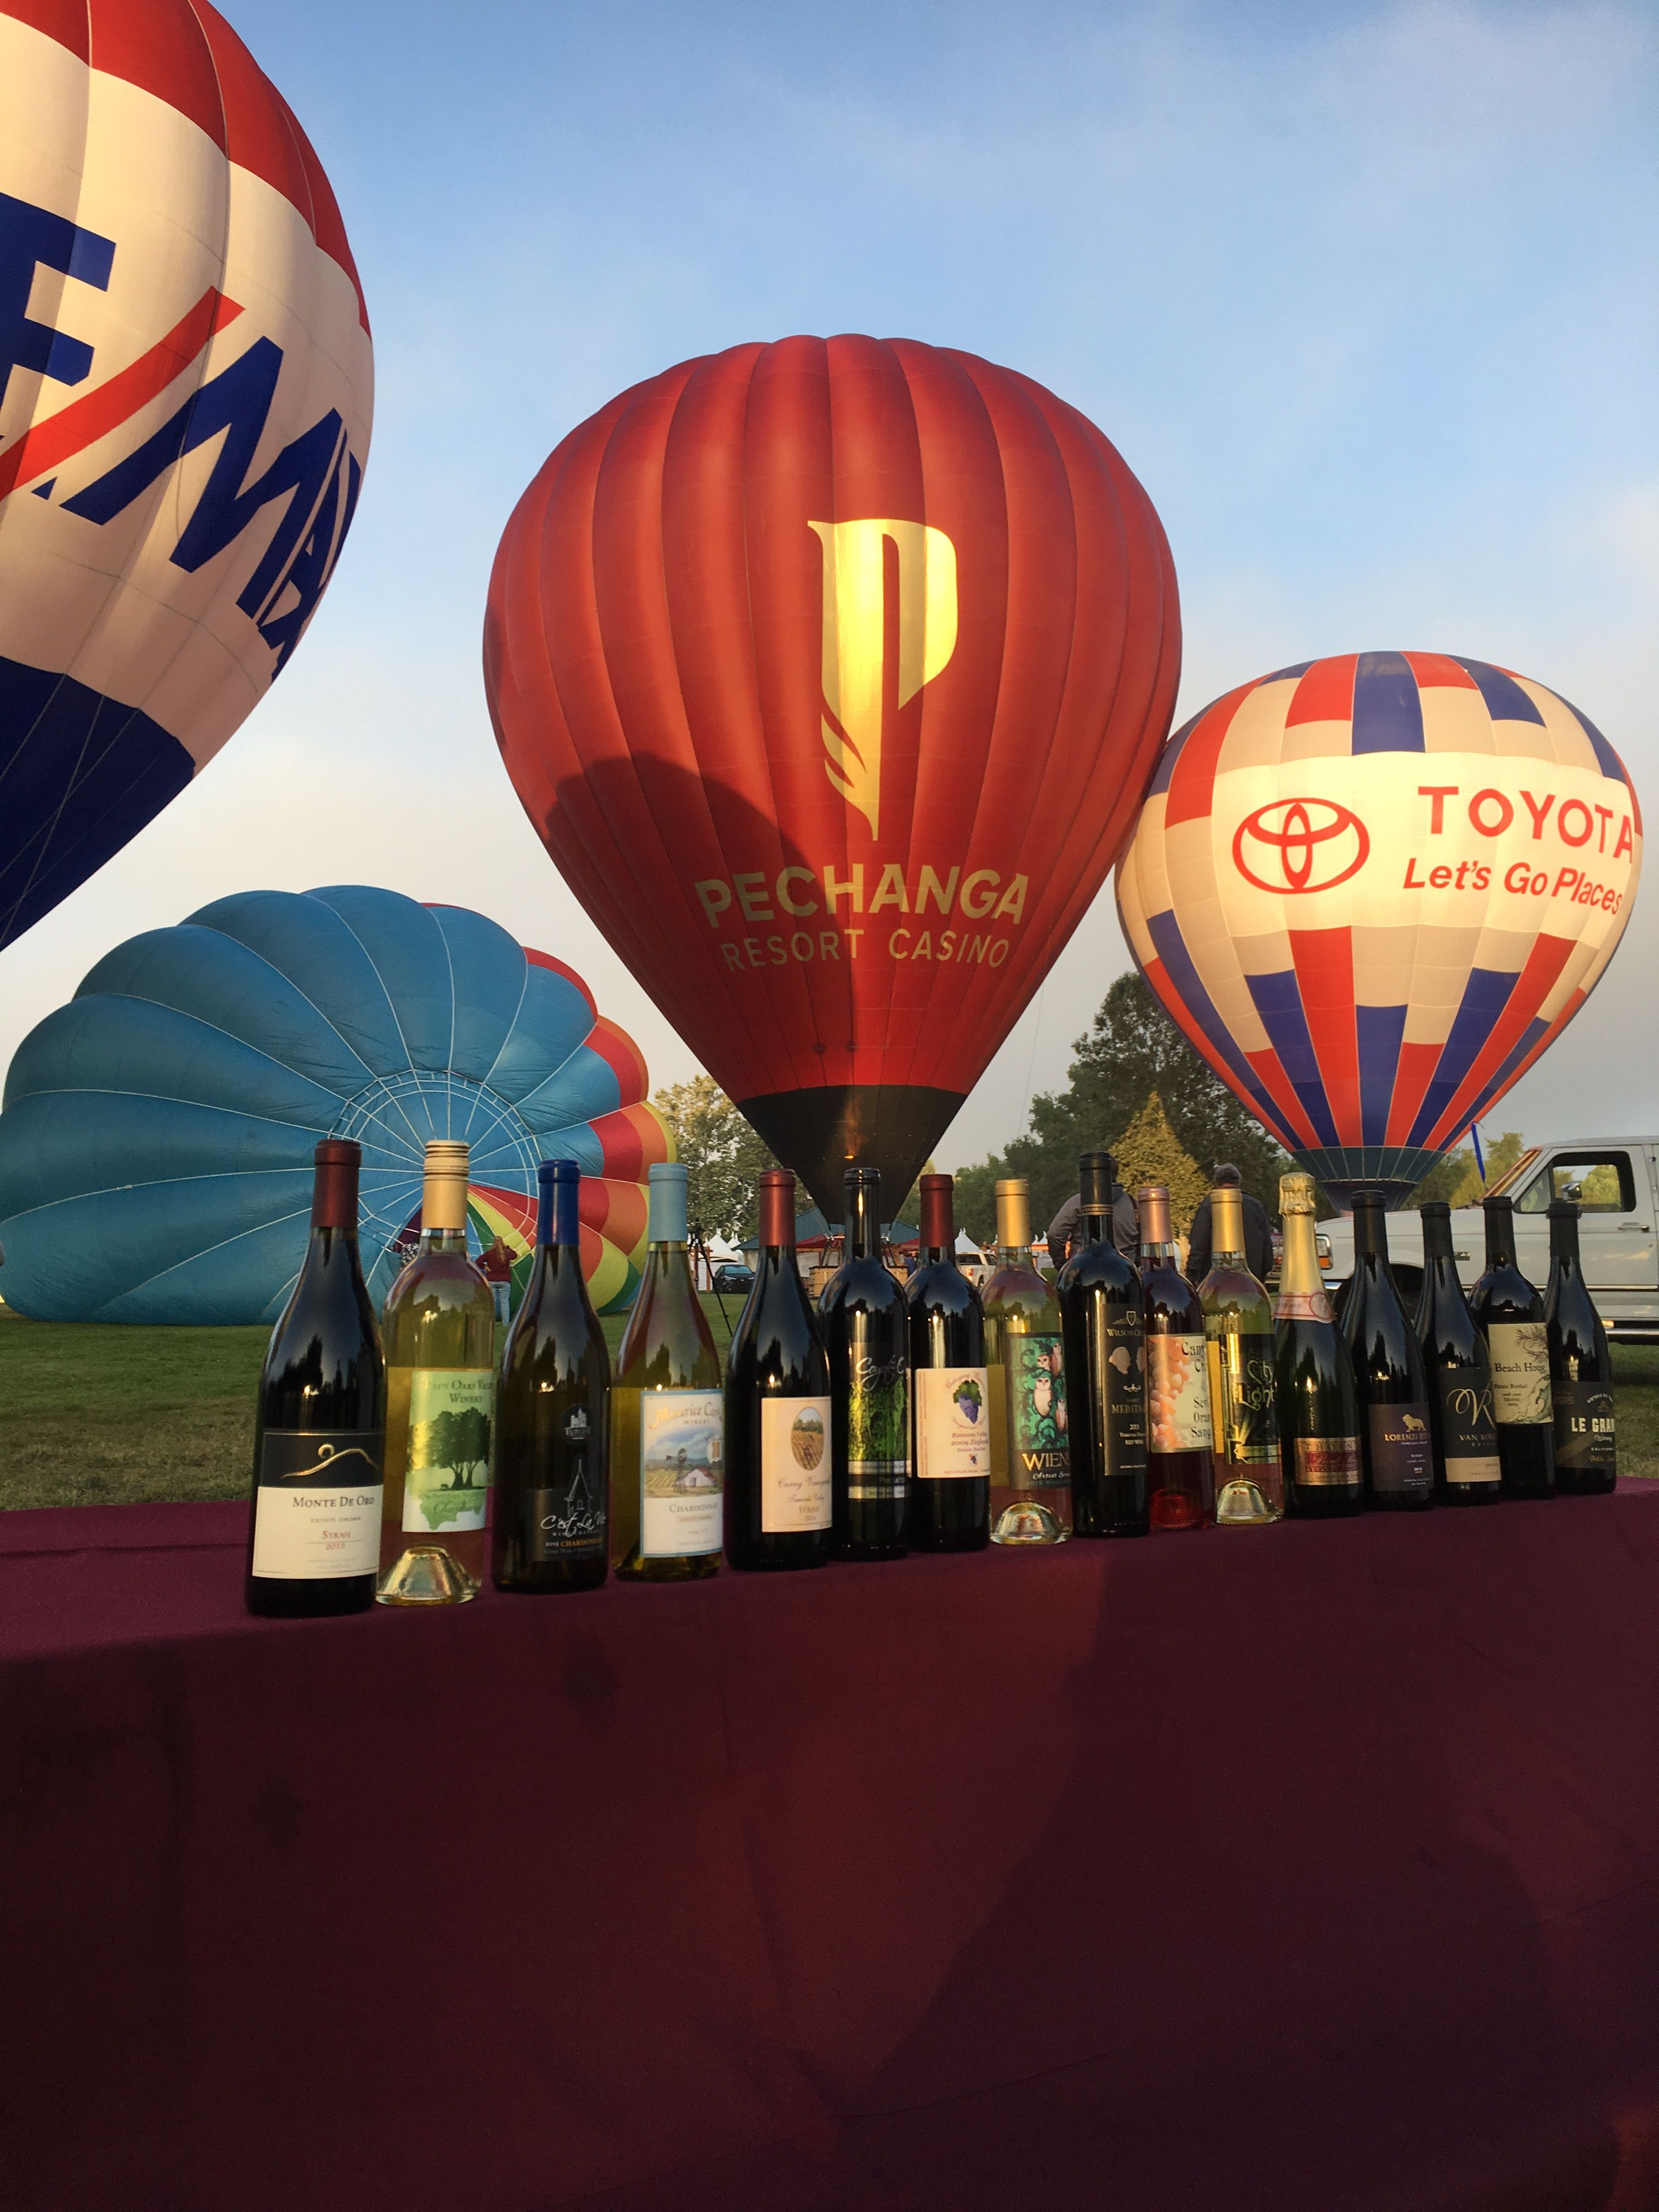 Tvbwf2017 Media Mornings Start At 4 Am Here Are Wines That Were Poured At The Festival 17 Wineries 40 Balloons 30 40 Balloons Wine Festival Casino Resort